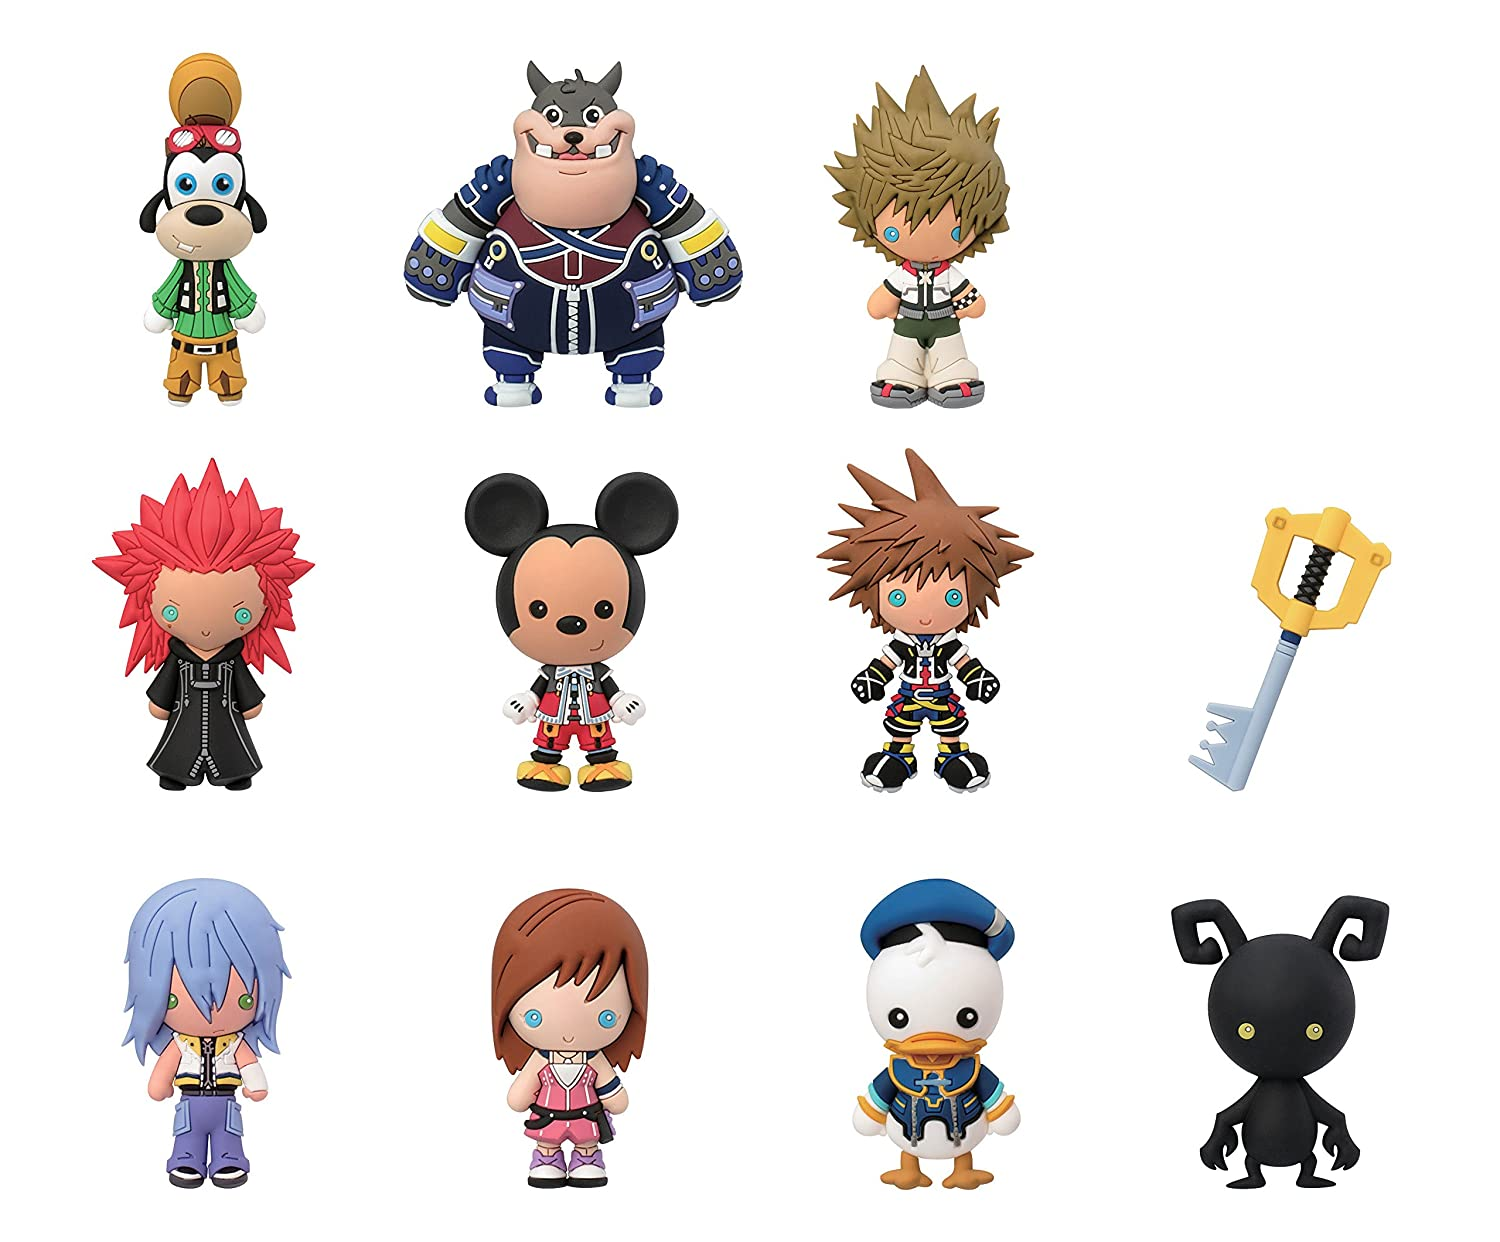 Disney Kingdom Hearts Coleccionable enrollable bolsas clave cadena: Amazon.es: Juguetes y juegos